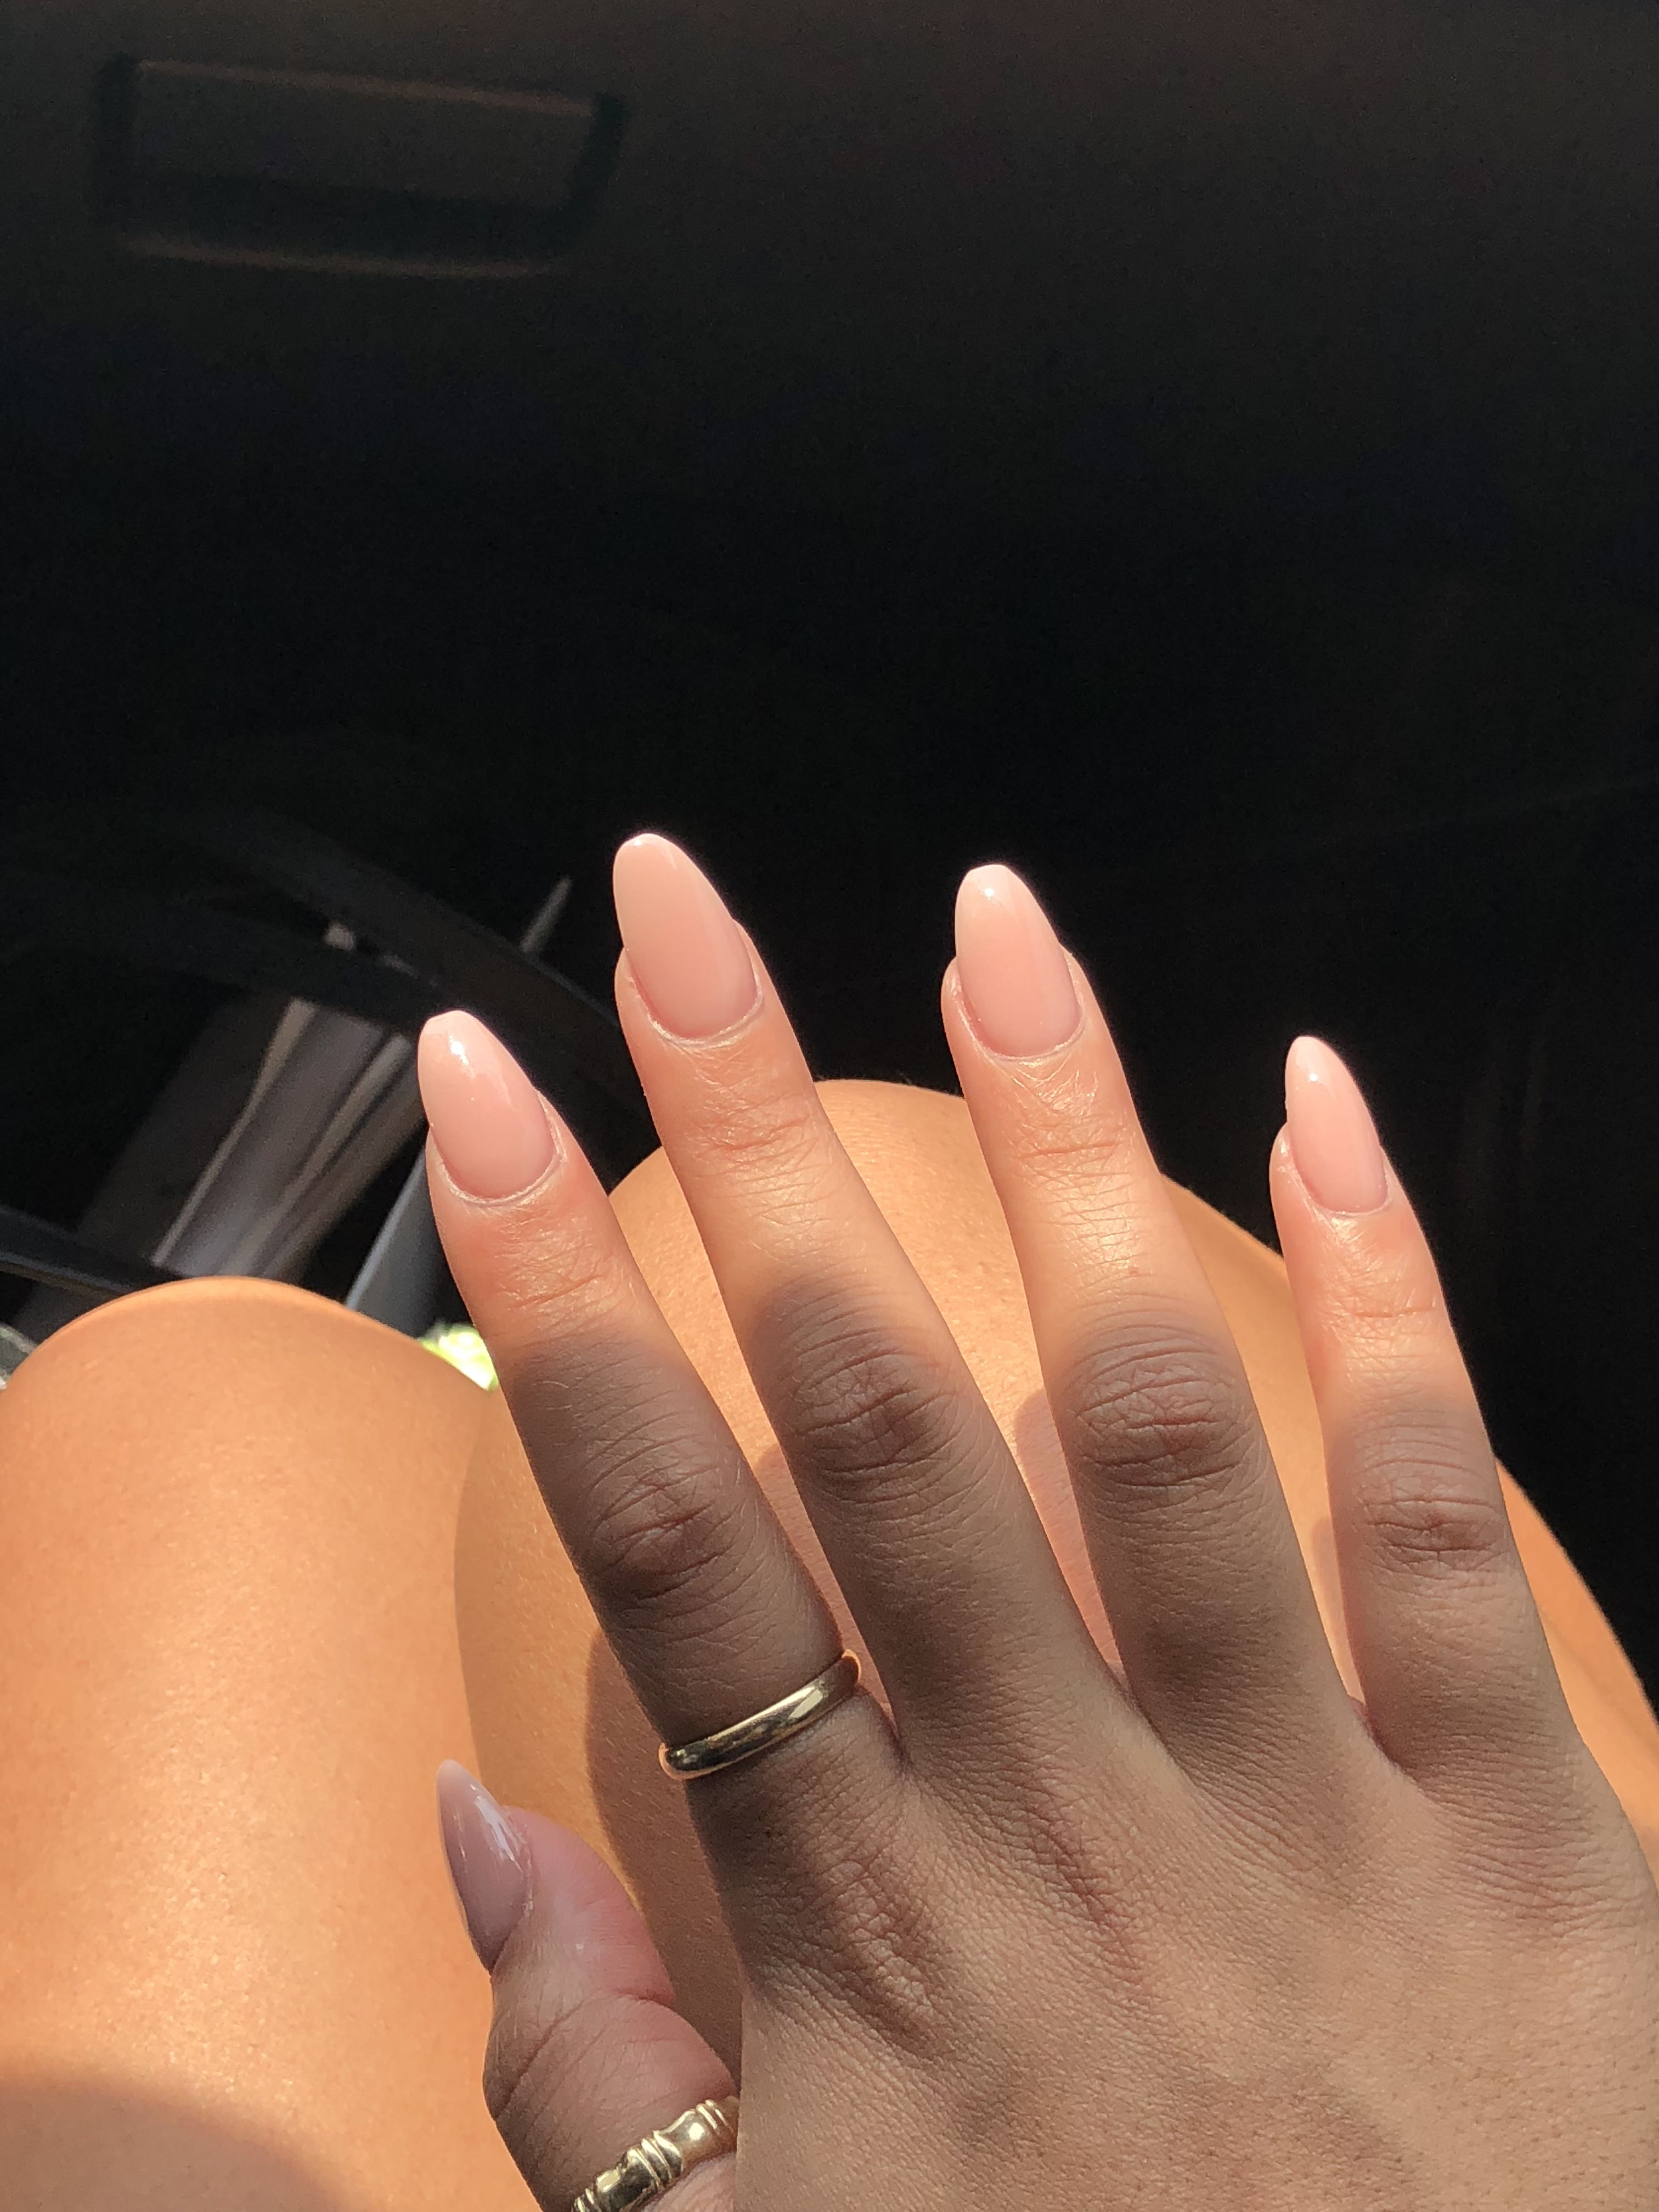 Pink Powder Almond Nails Rounded Acrylic Nails Almond Nails Pink Best Acrylic Nails